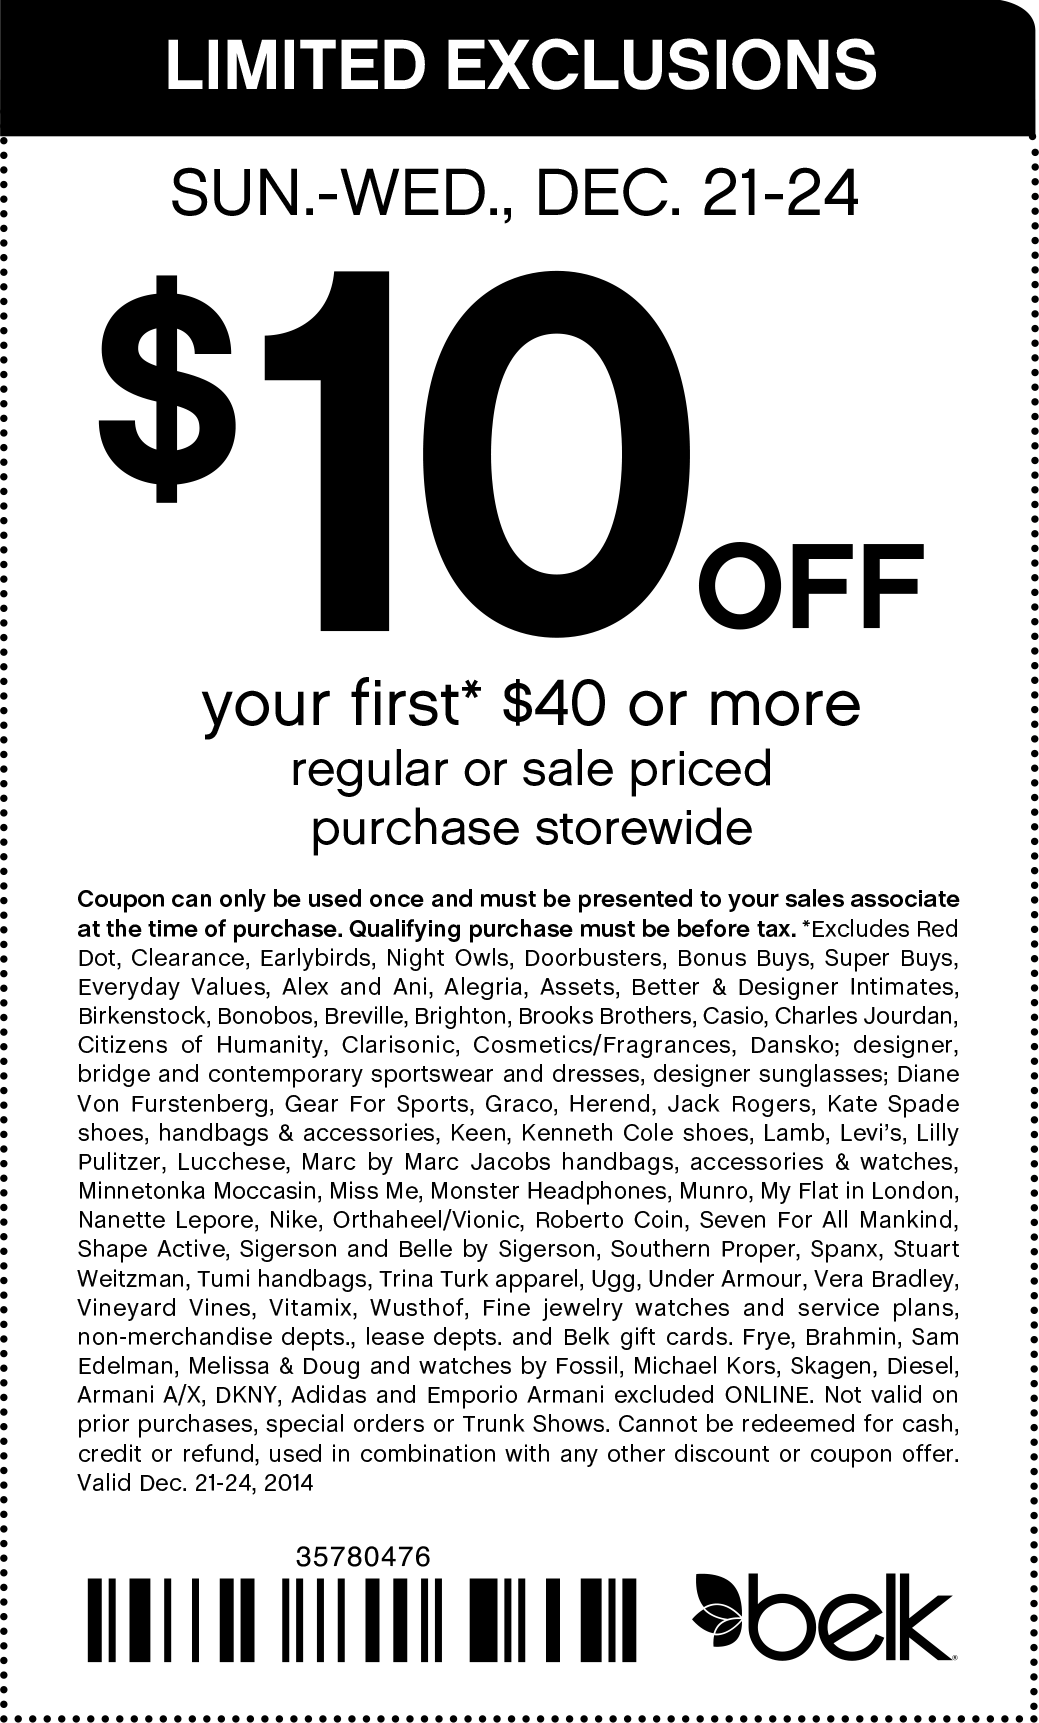 Strawbridge coupon code